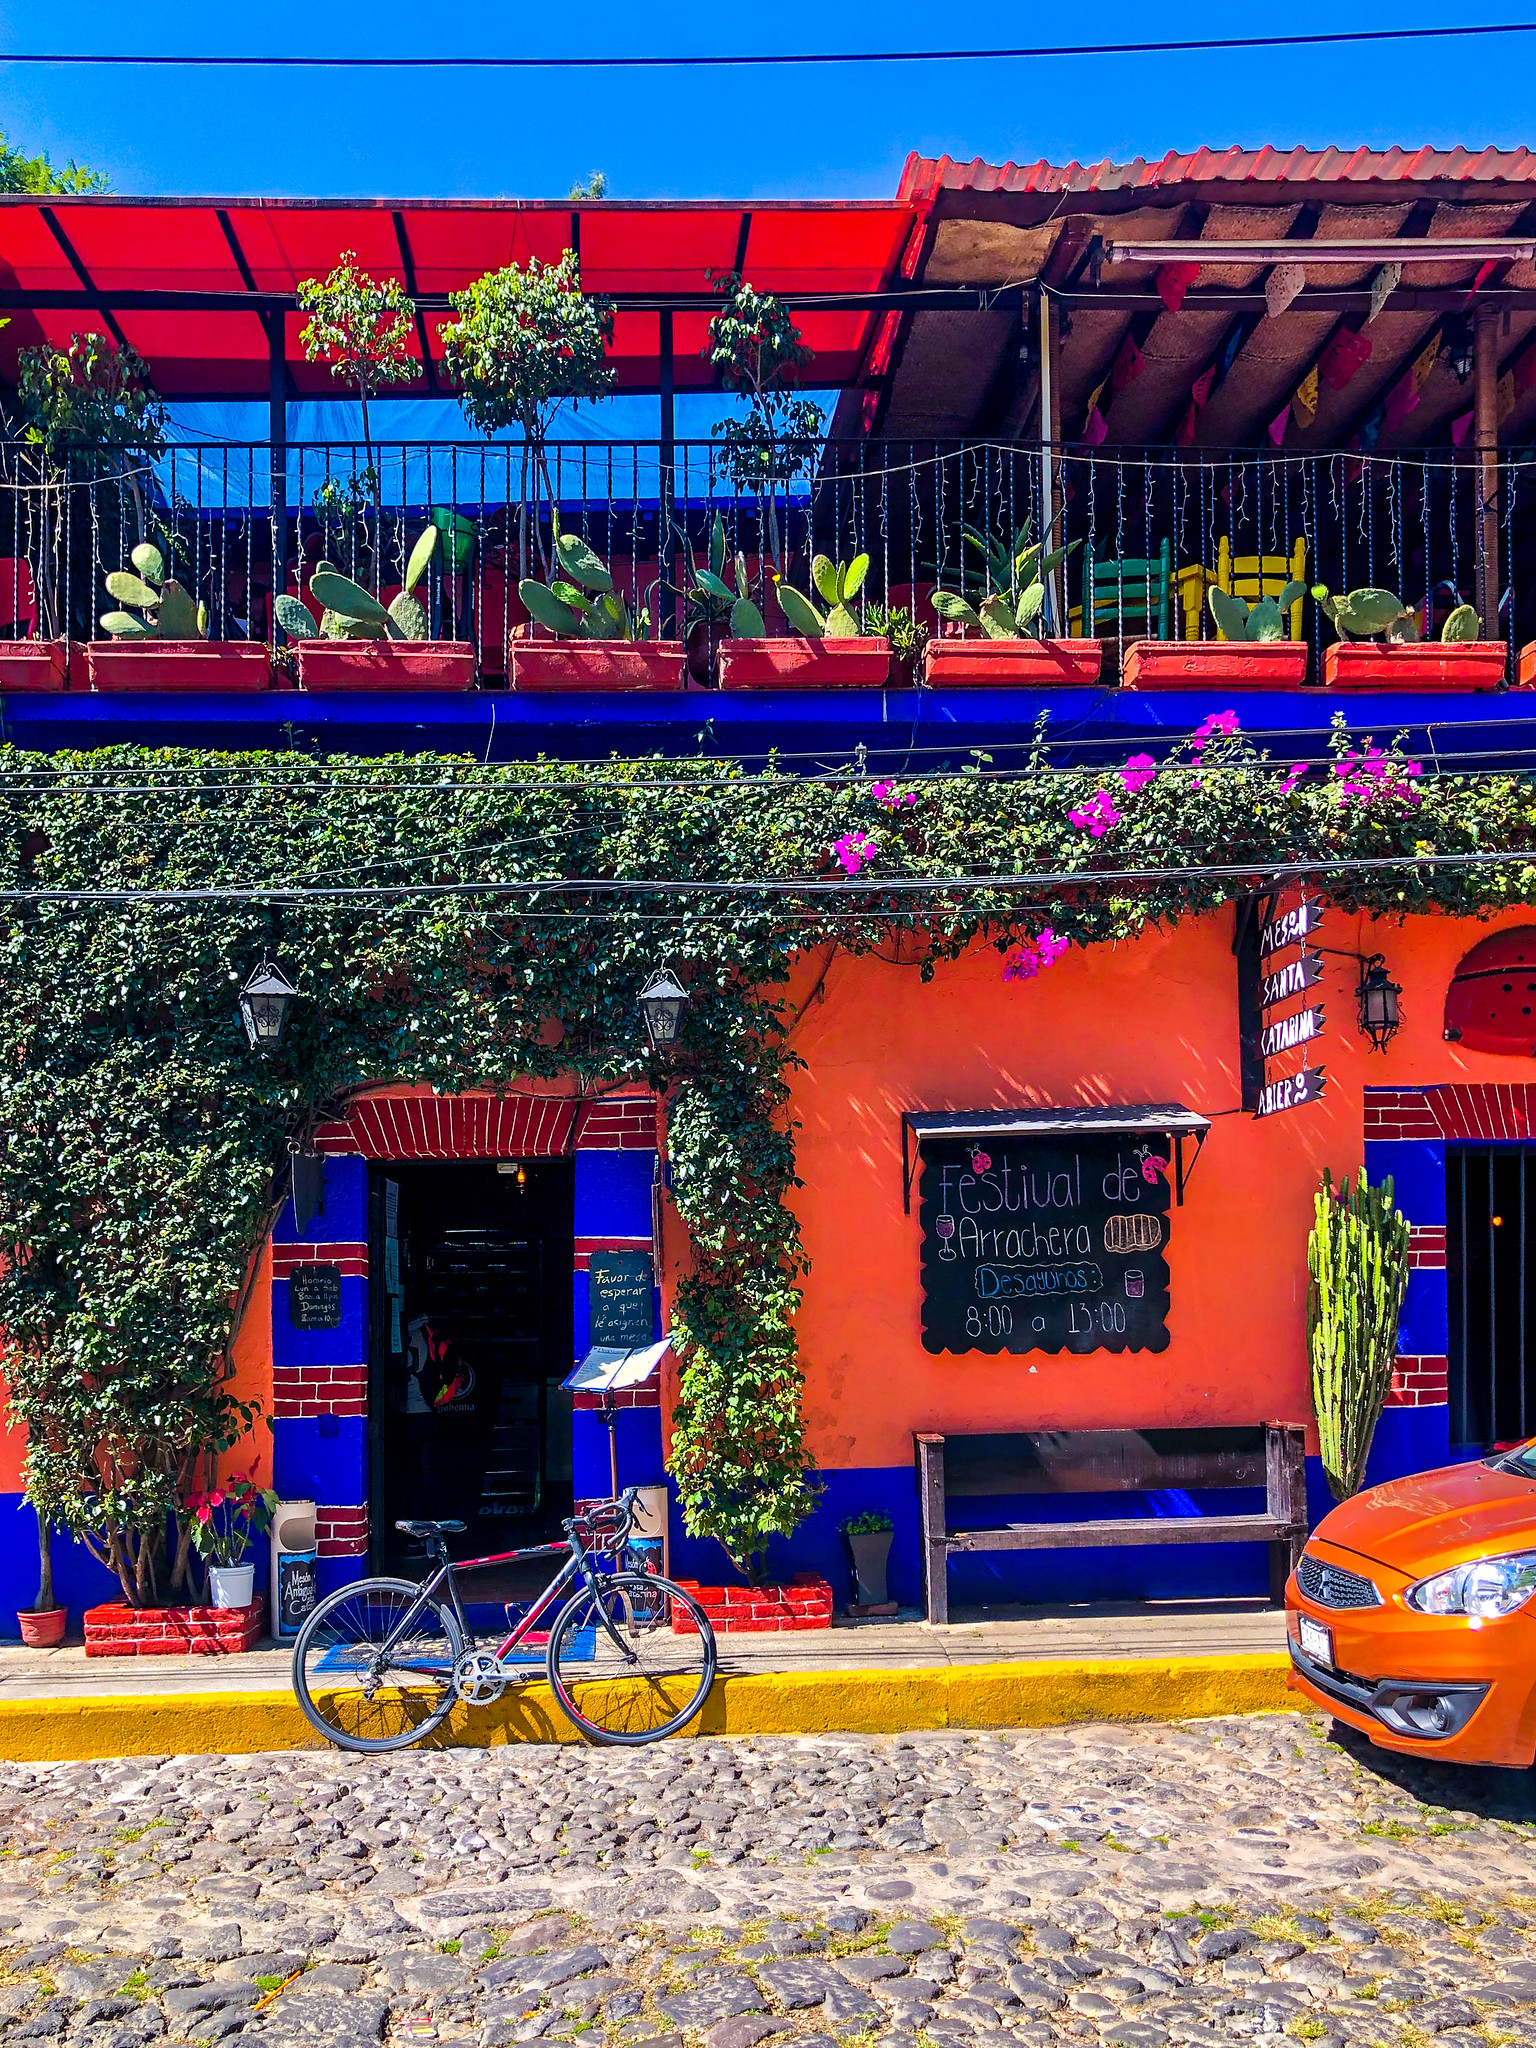 The Ultimate Self Guided Walking Tour of Historic Coyoacán, Mexico City's Oldest Neighbourhood